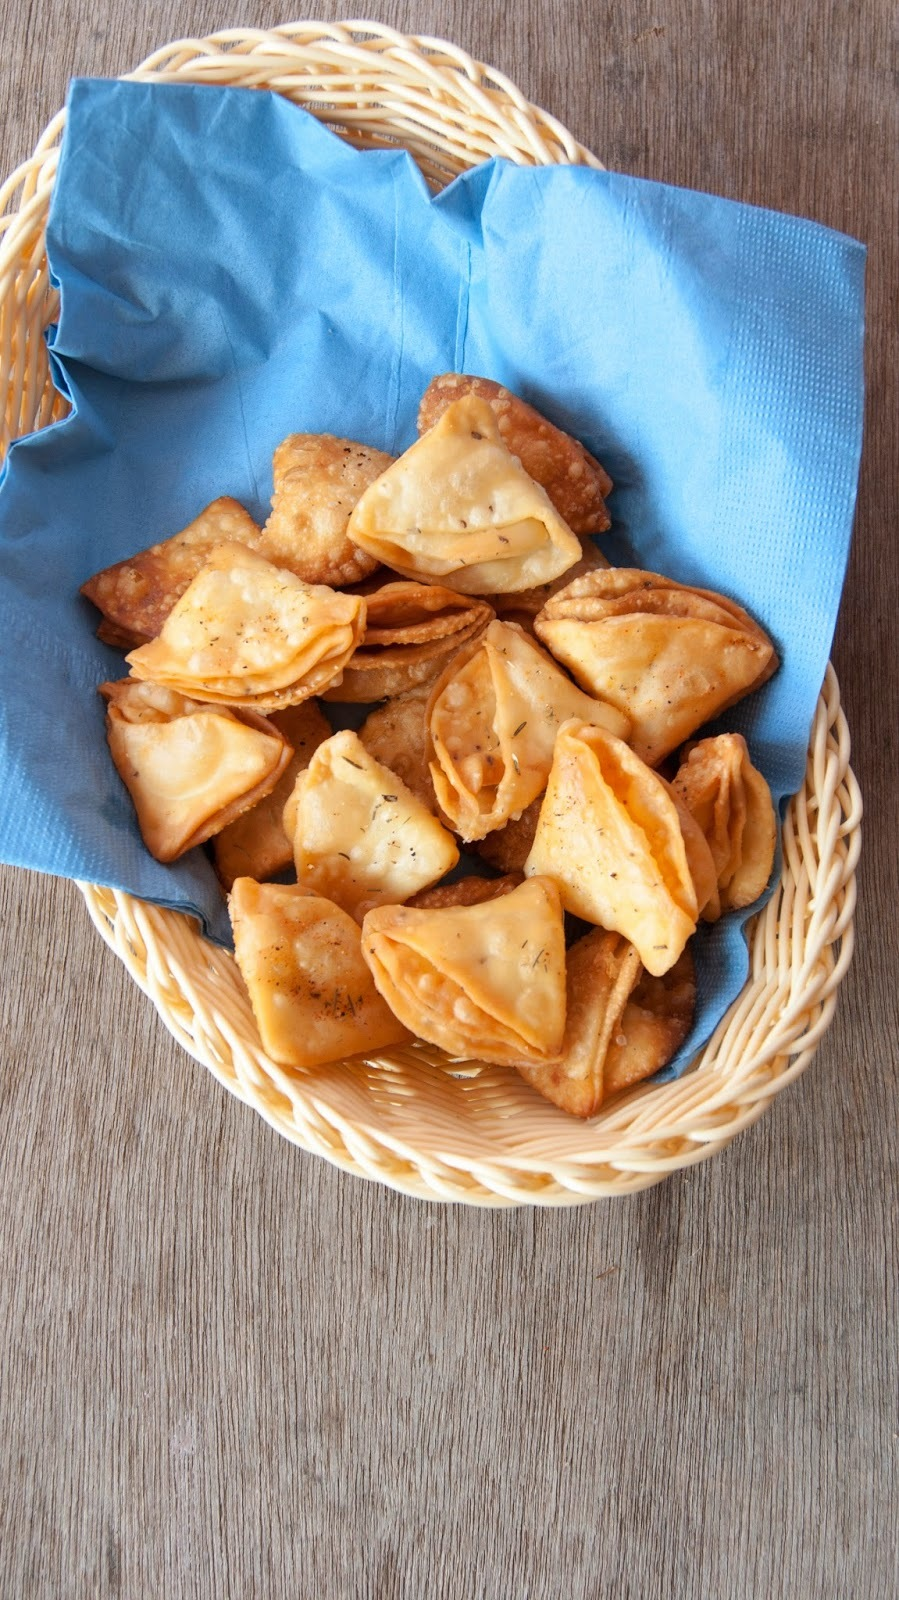 Mathri / A fried snack flavoured with dry herbs